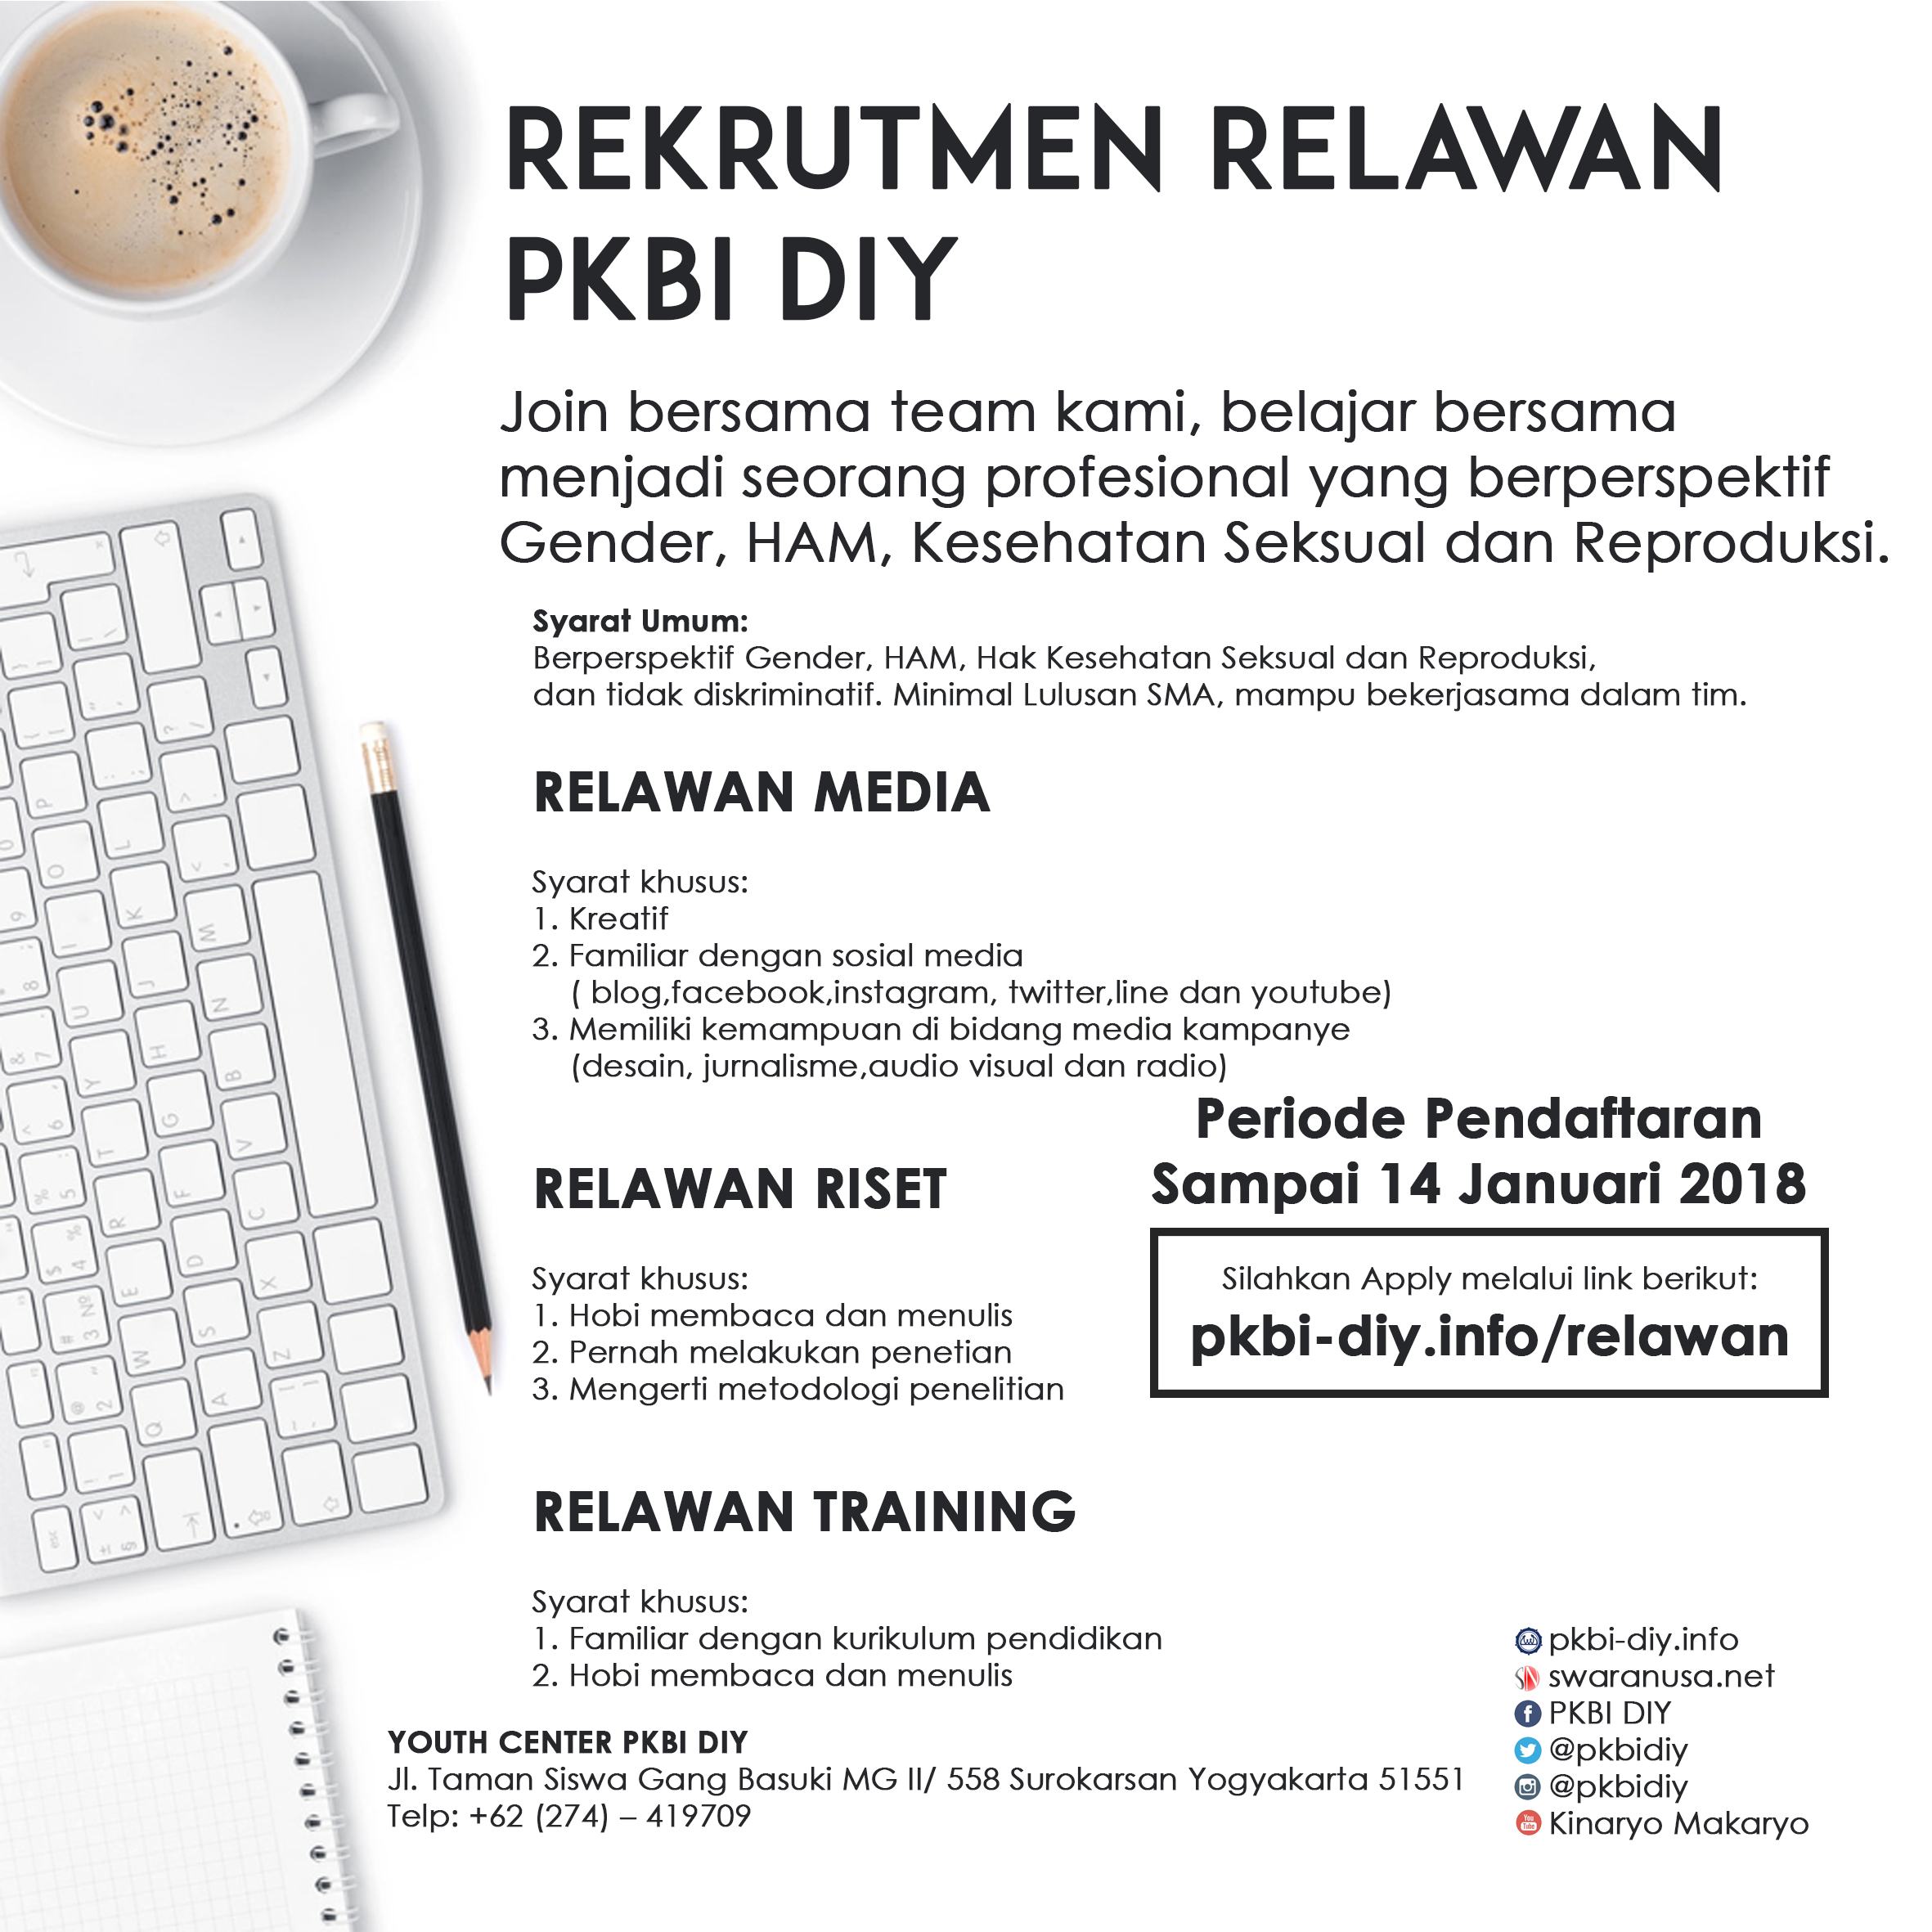 Rekrutmen Relawan PKBI DIY ( Media, Riset, dan Training)